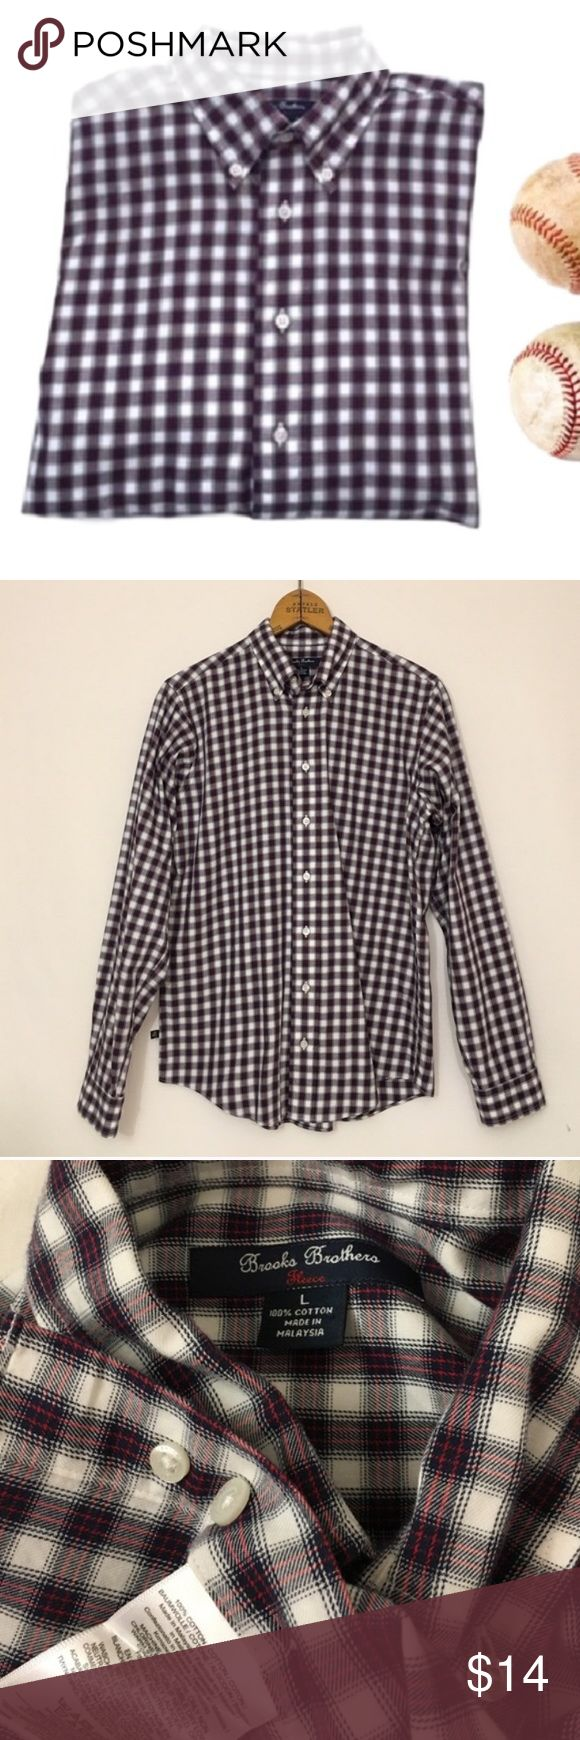 """Boys BROOKS BROTHERS fleece plaid cotton shirt Boys BROOKS BROTHERS fleece plaid cotton shirt Excellent condition! Fleece is the line name, not the material. Cotton. Machine wash. Chest 40"""" Brooks Brothers Shirts & Tops Button Down Shirts"""